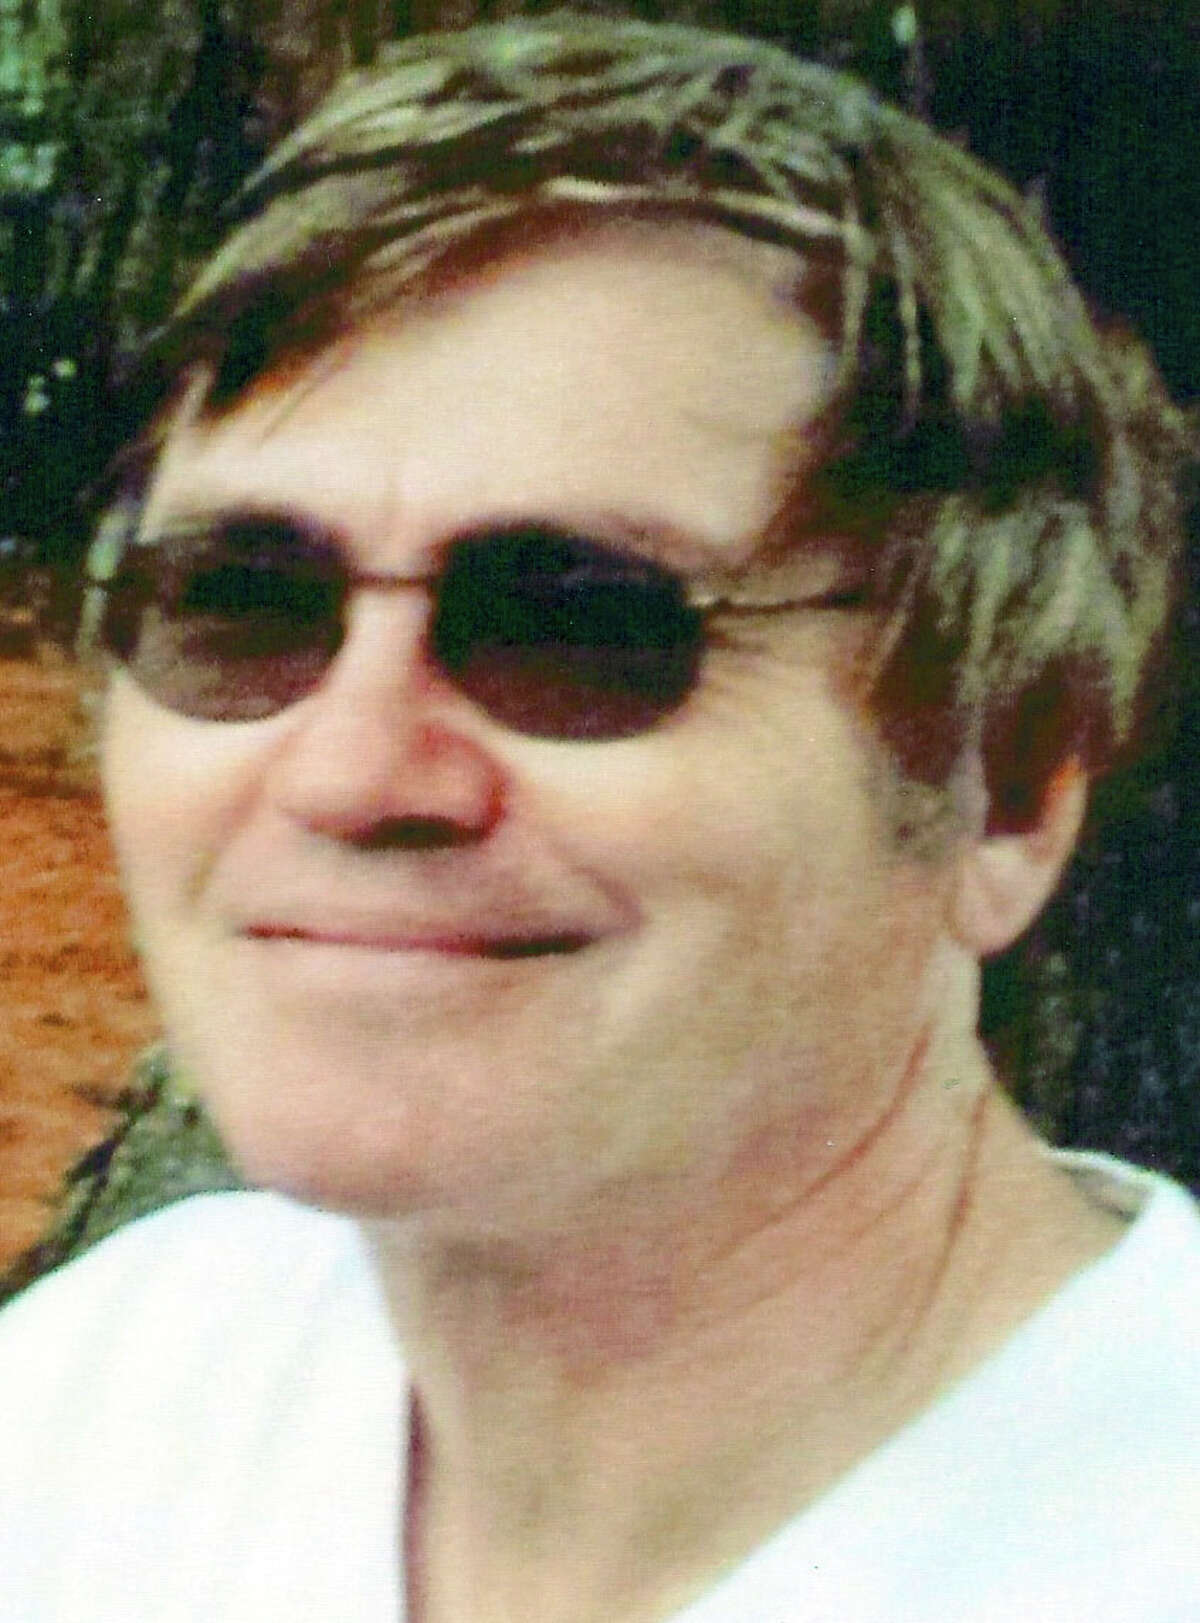 Dwight Hipp, 58, of New Miklford is remembered fondly by friends following his Aug. 22, 2014 death. Courtesy of the Hipp family